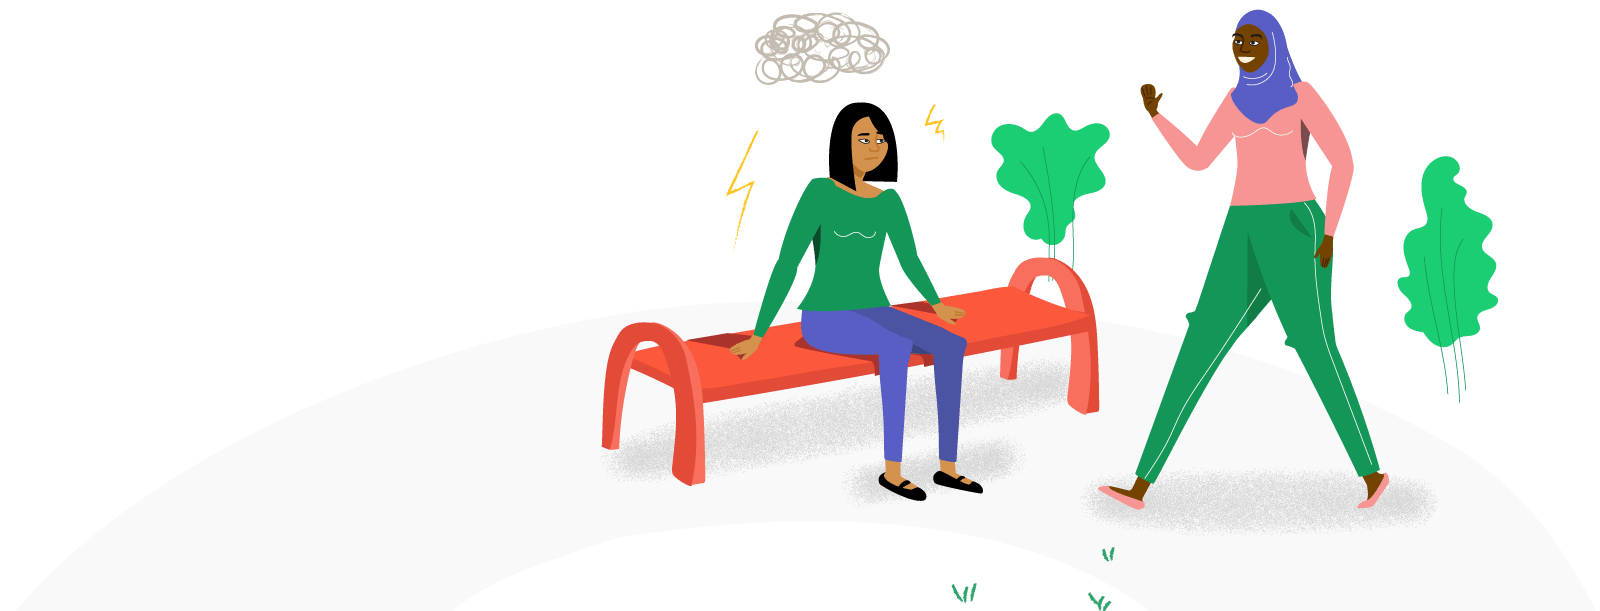 Illustration of woman waving to her friend whose face is downcast